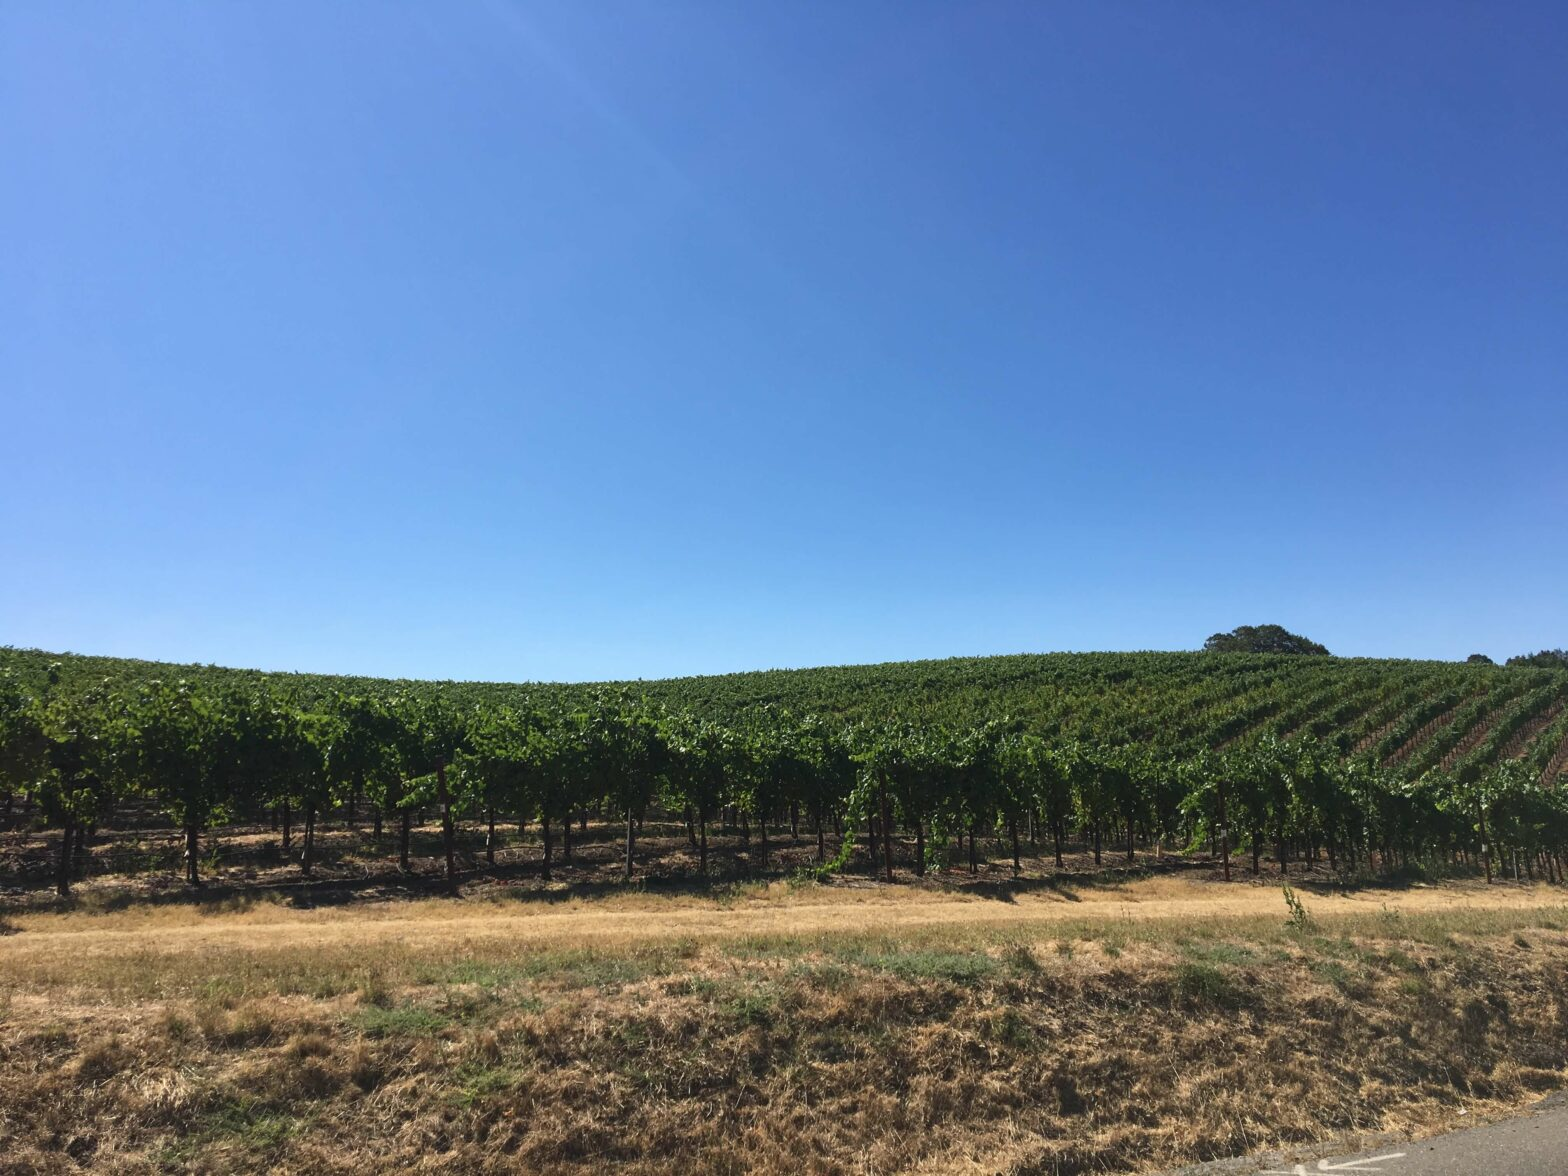 View of vineyards in Sonoma